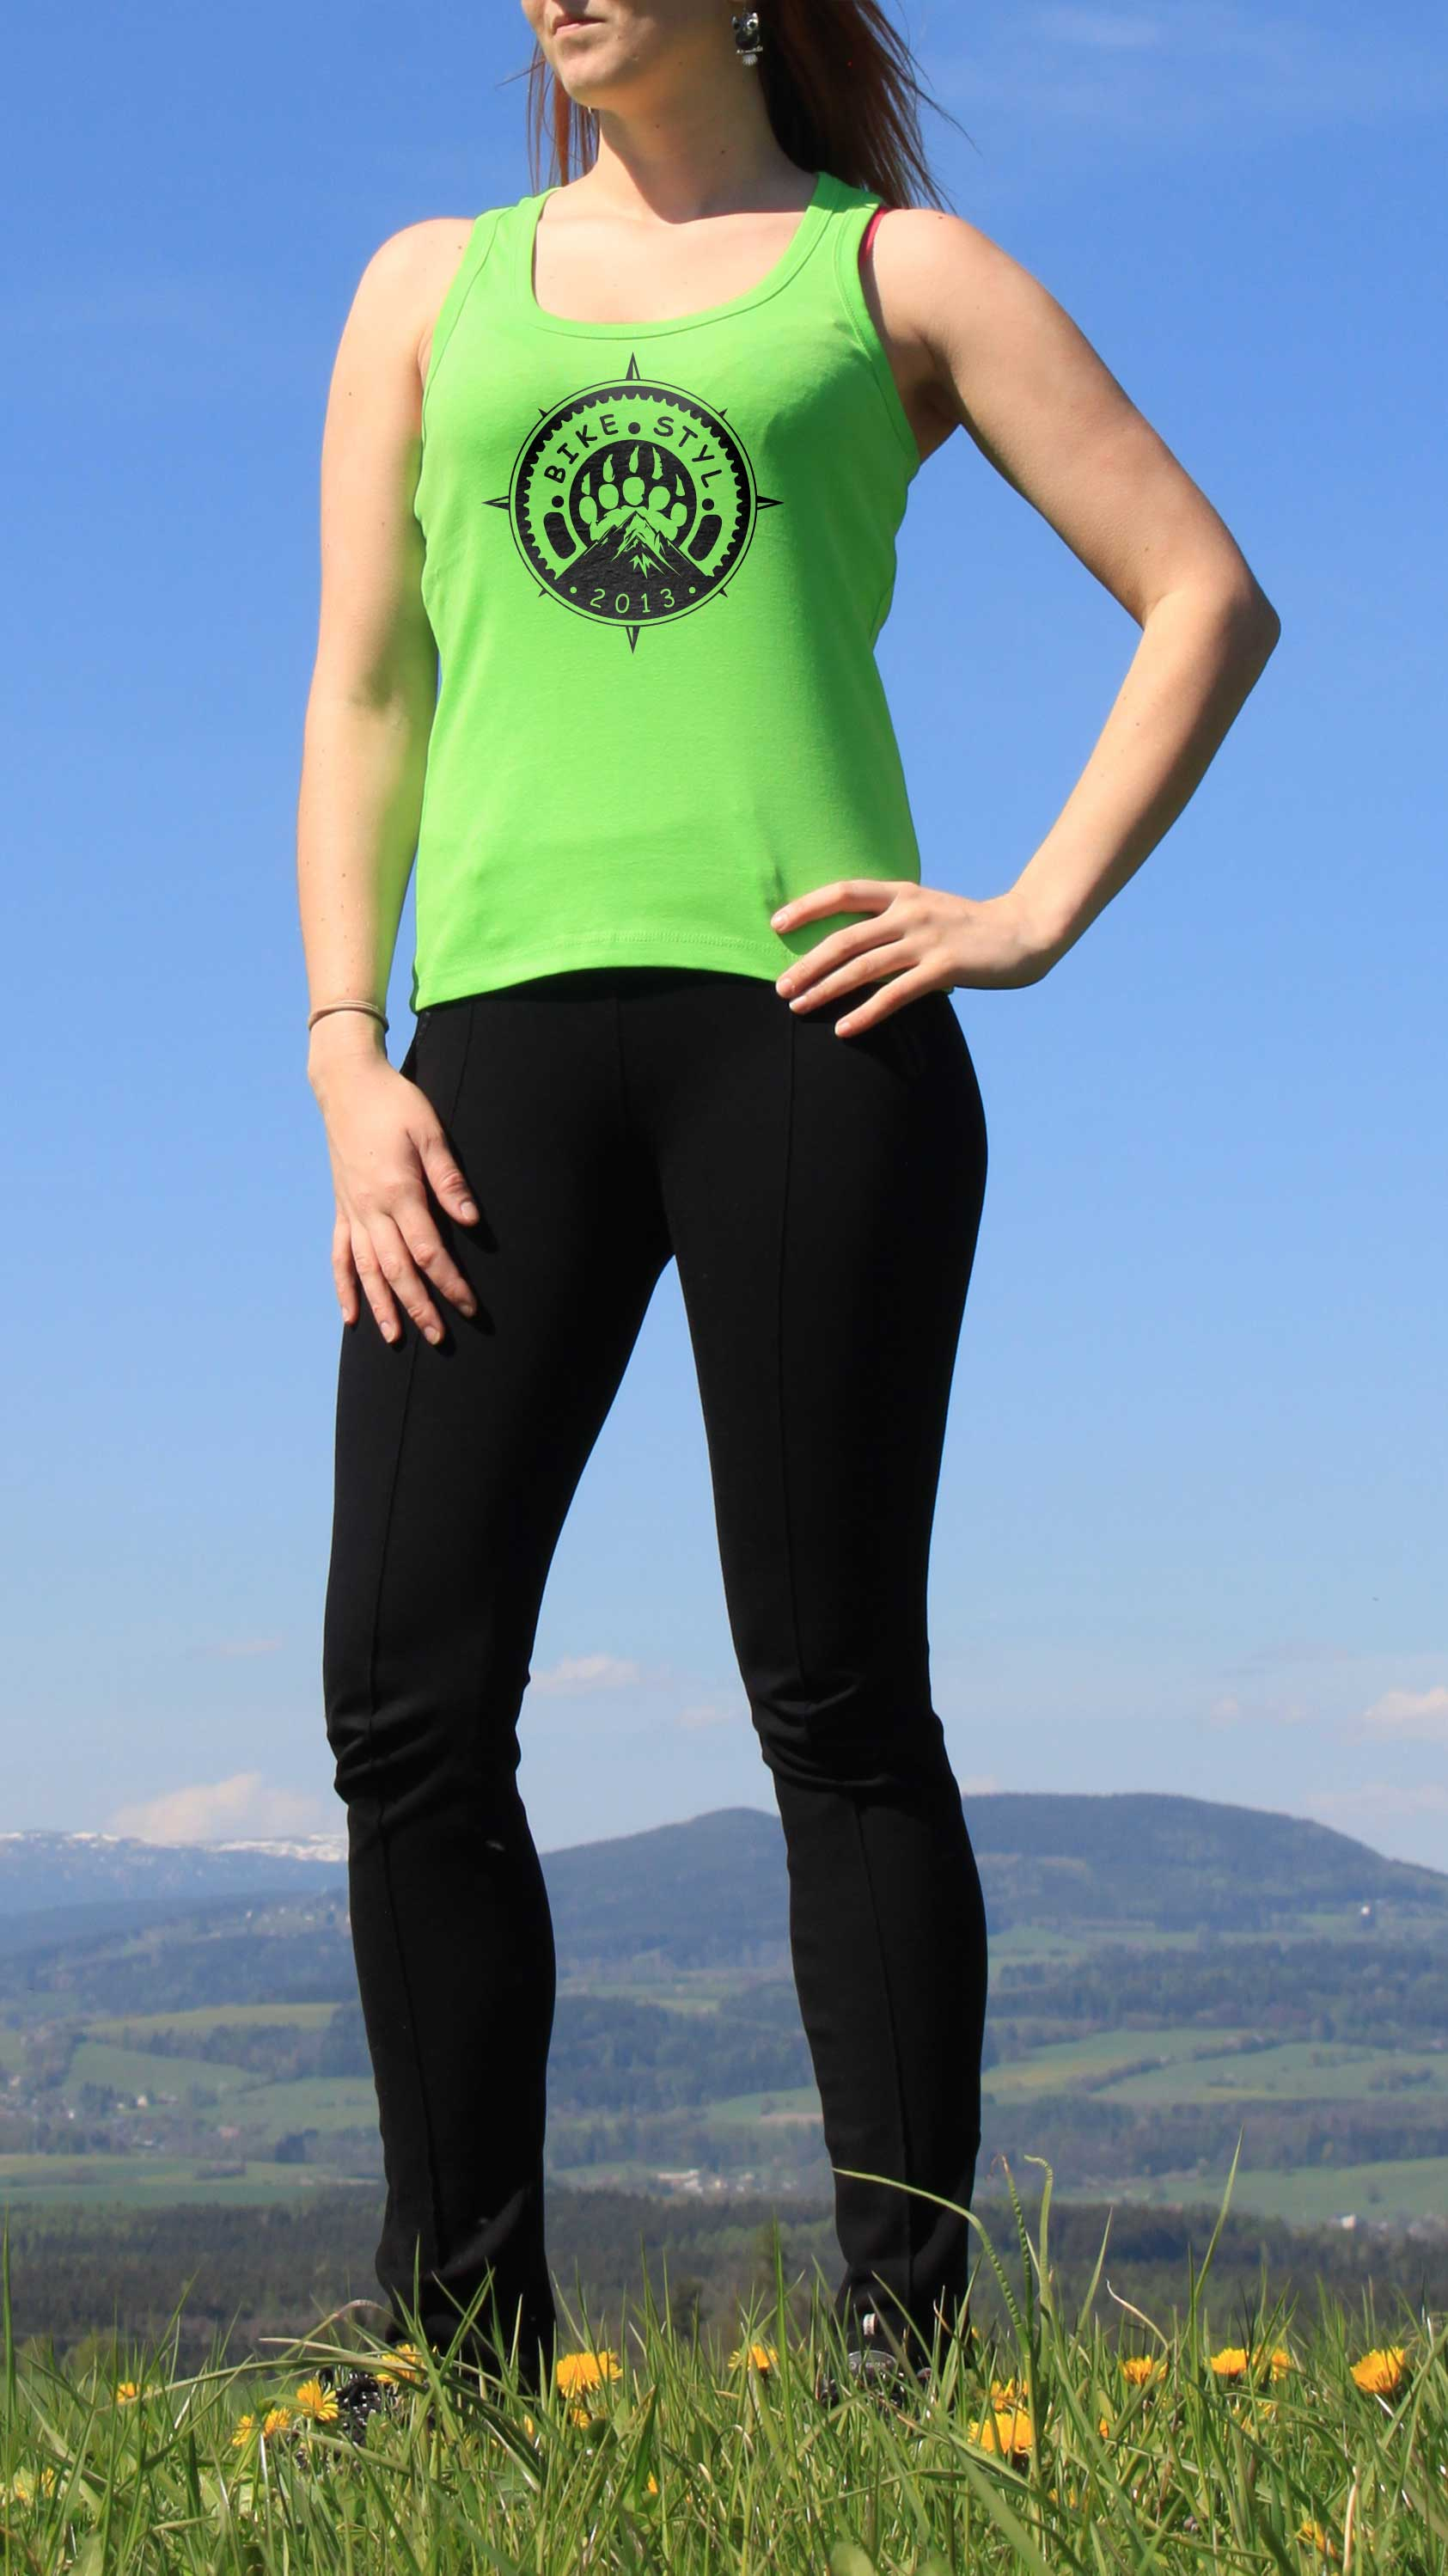 ladies green top bike